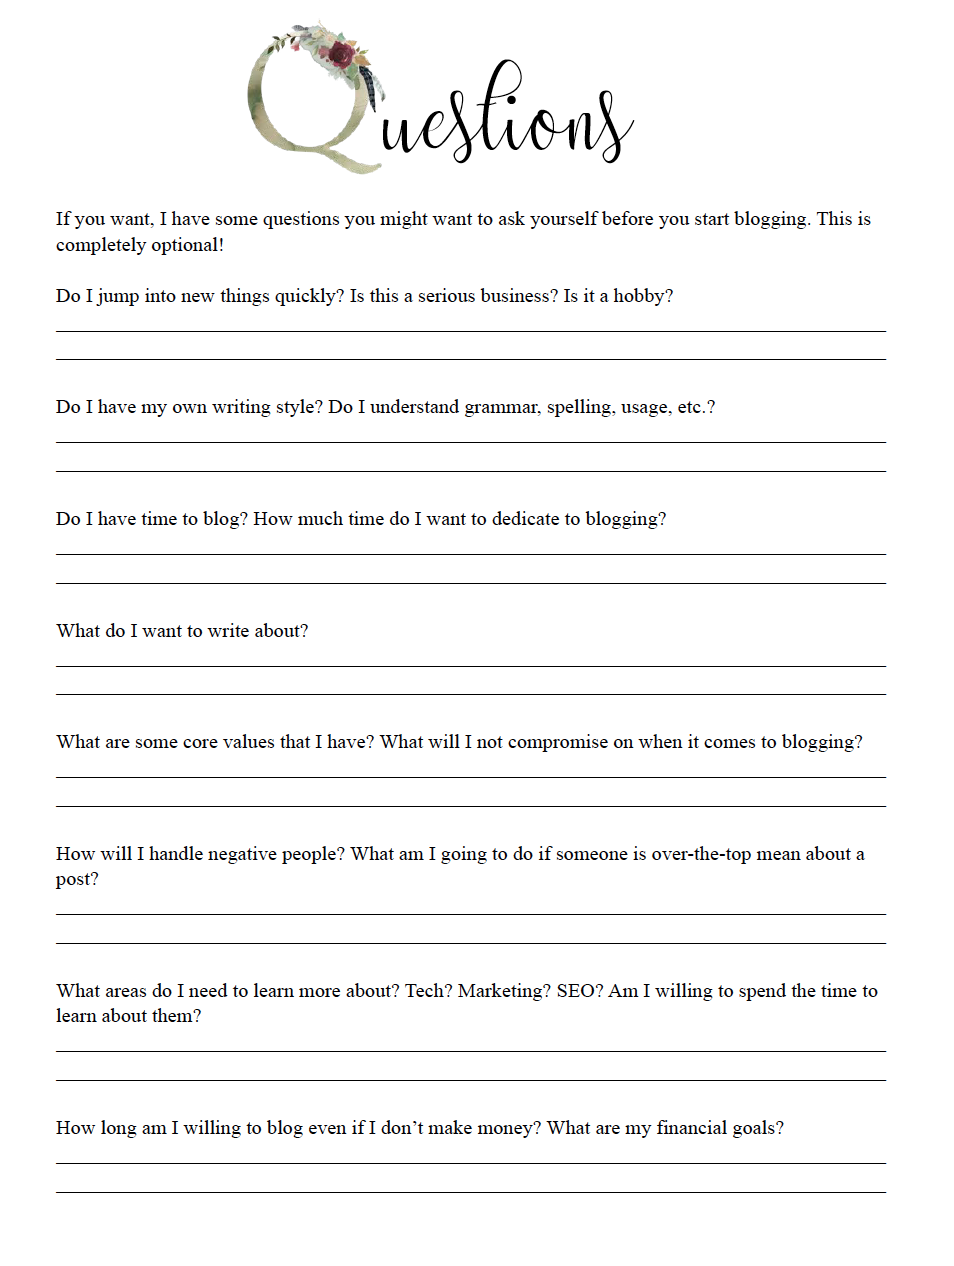 Questions to answer before starting a blog worksheet.